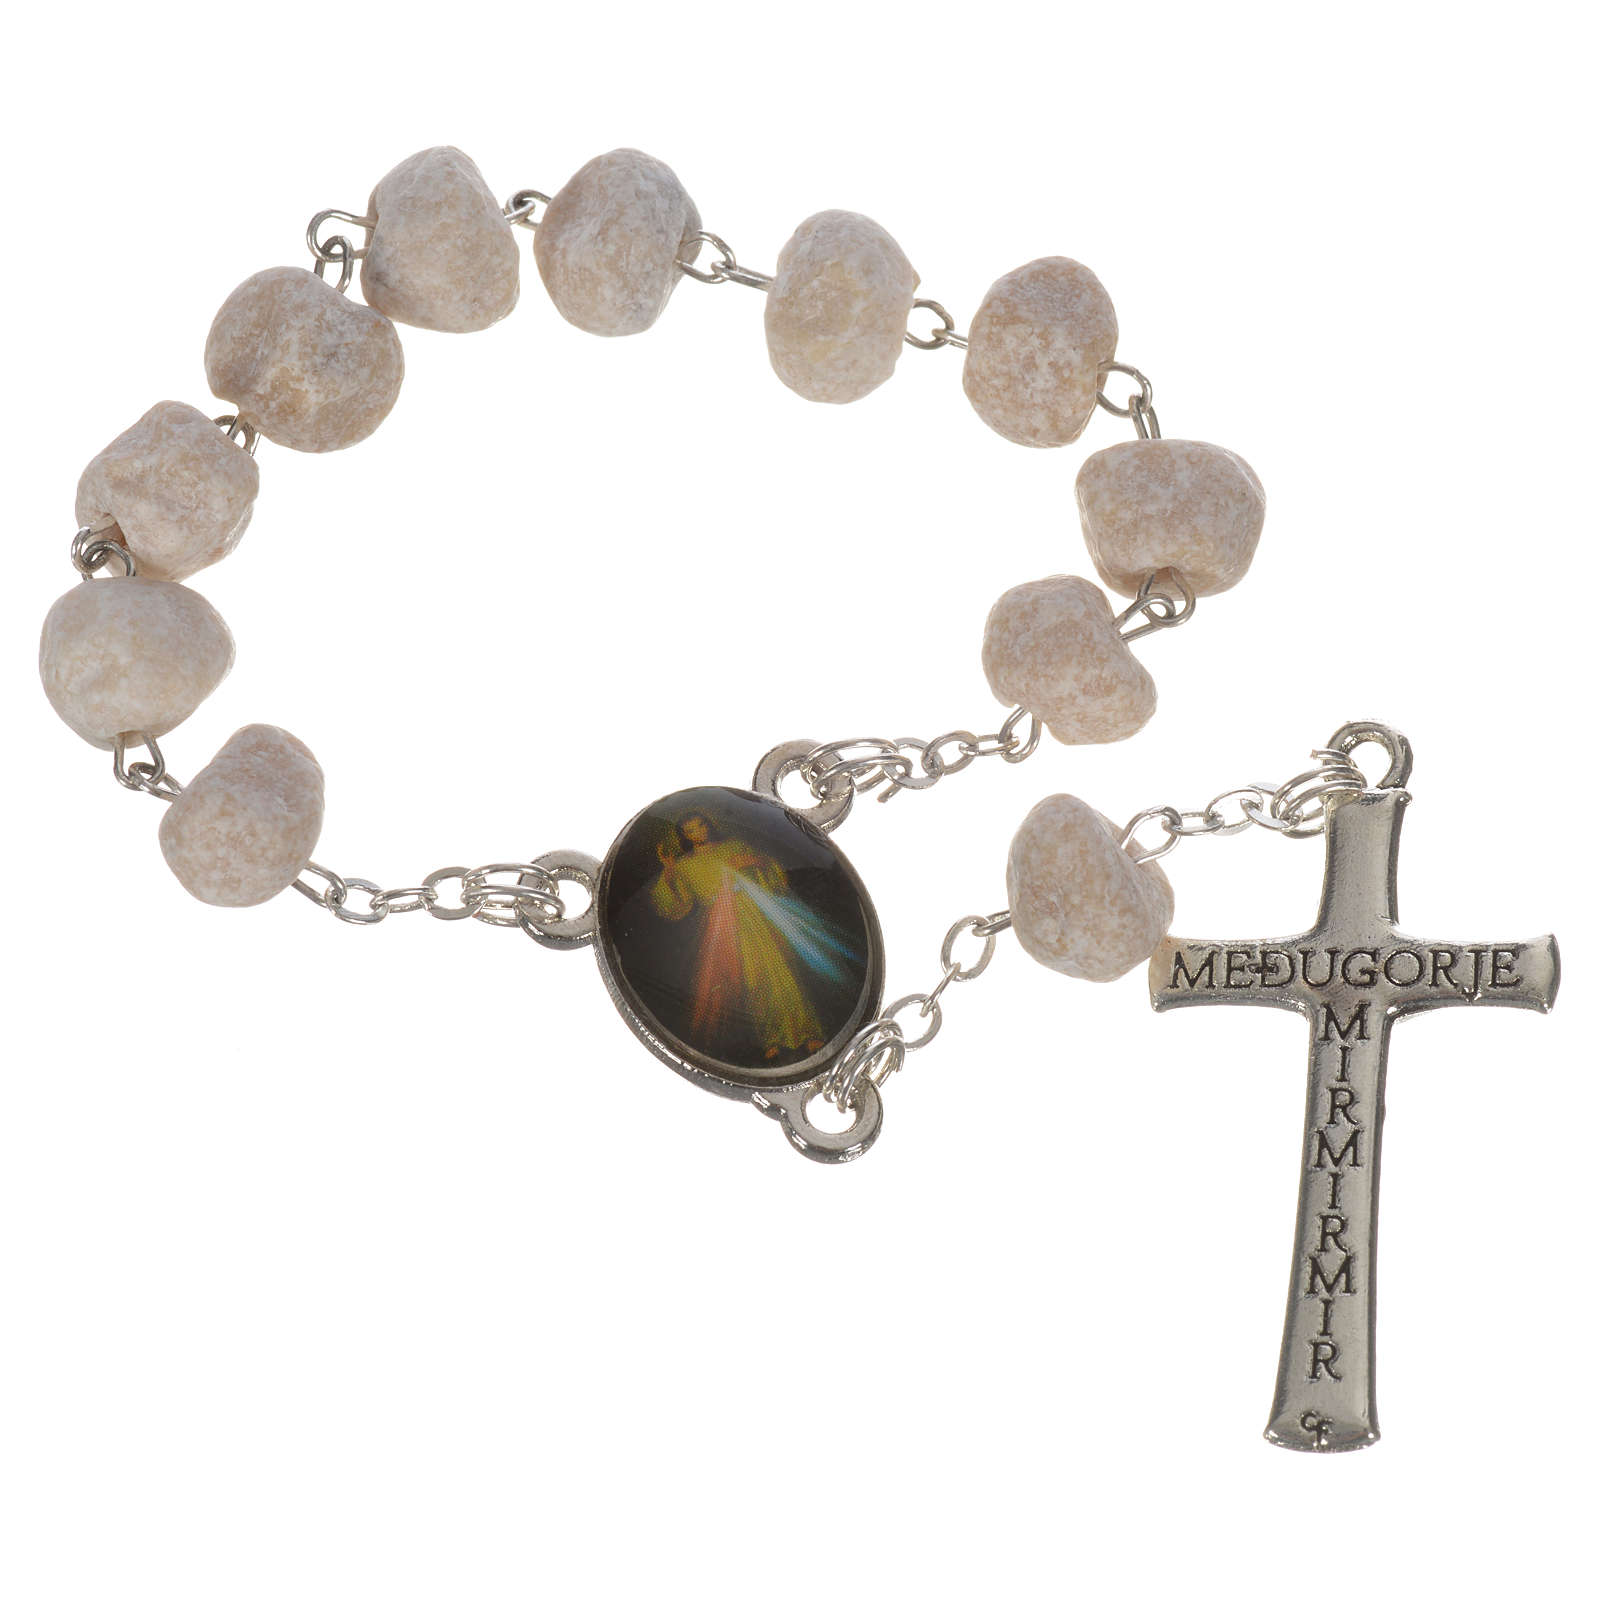 White stone Medjugorje decade rosary 4